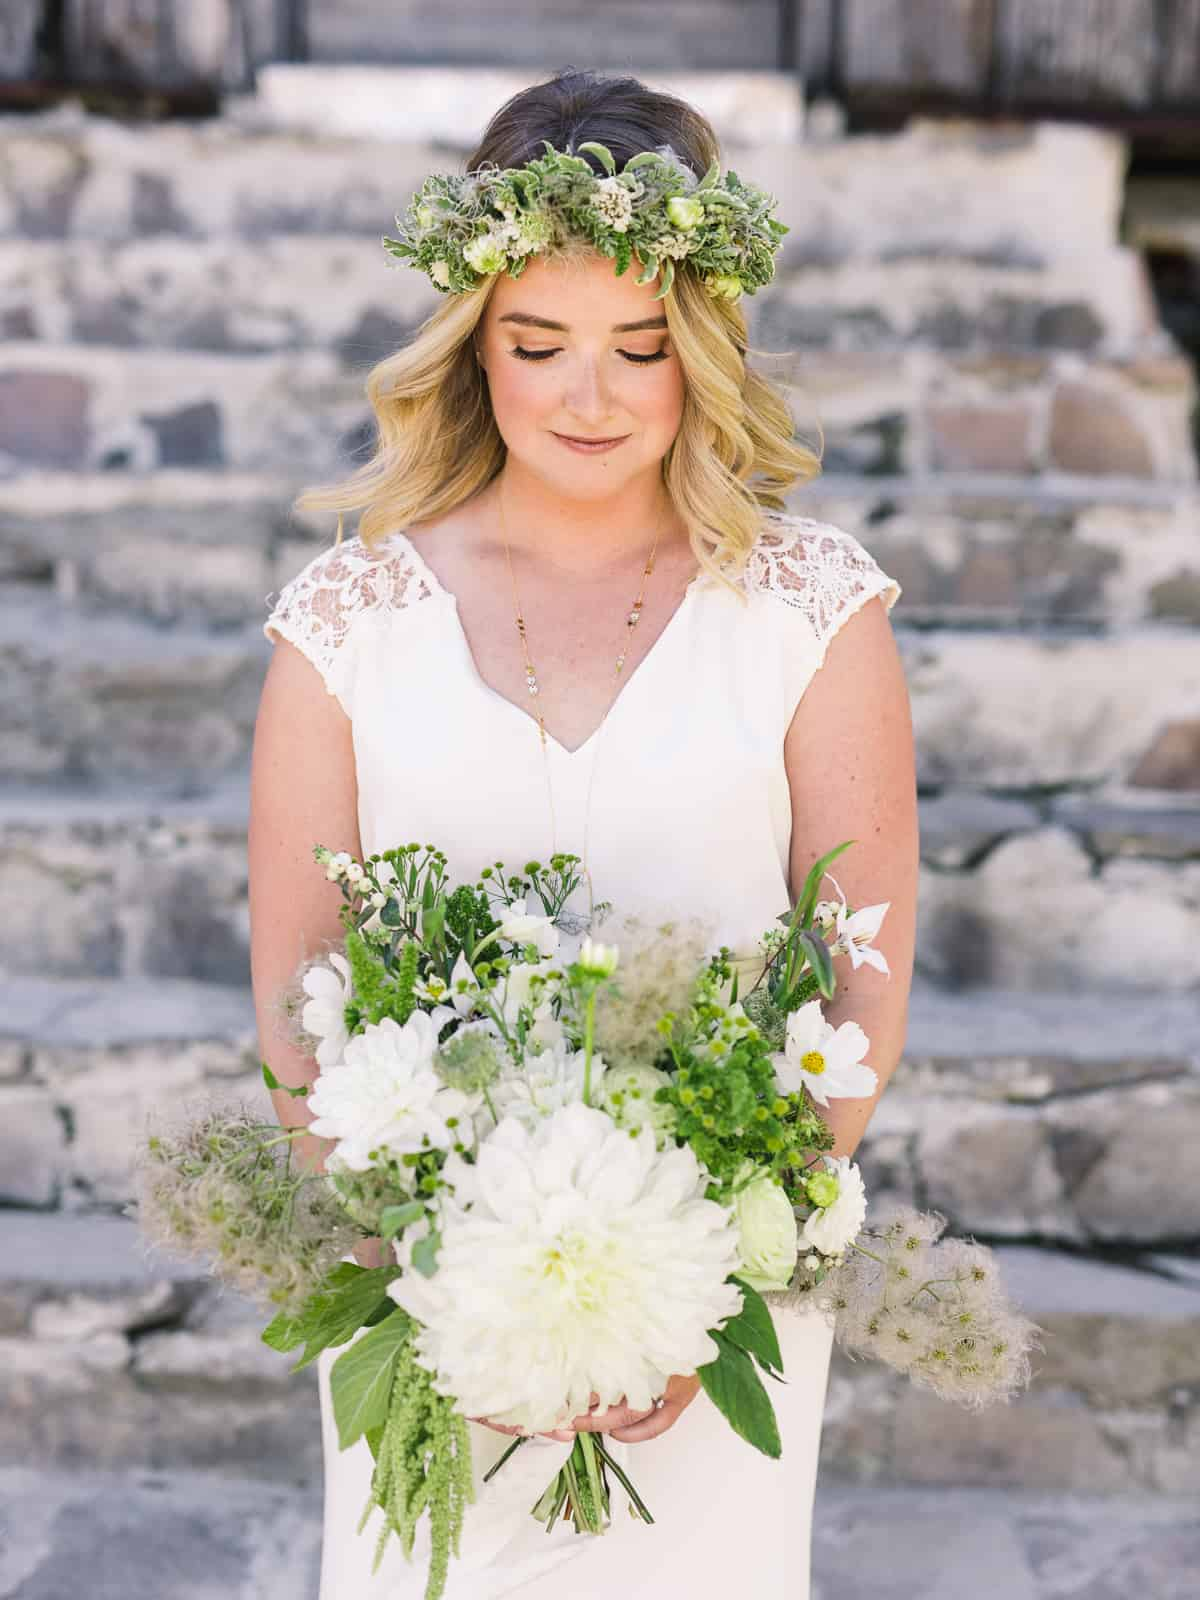 bride portrait with flower crown and bouquet in front of stone steps